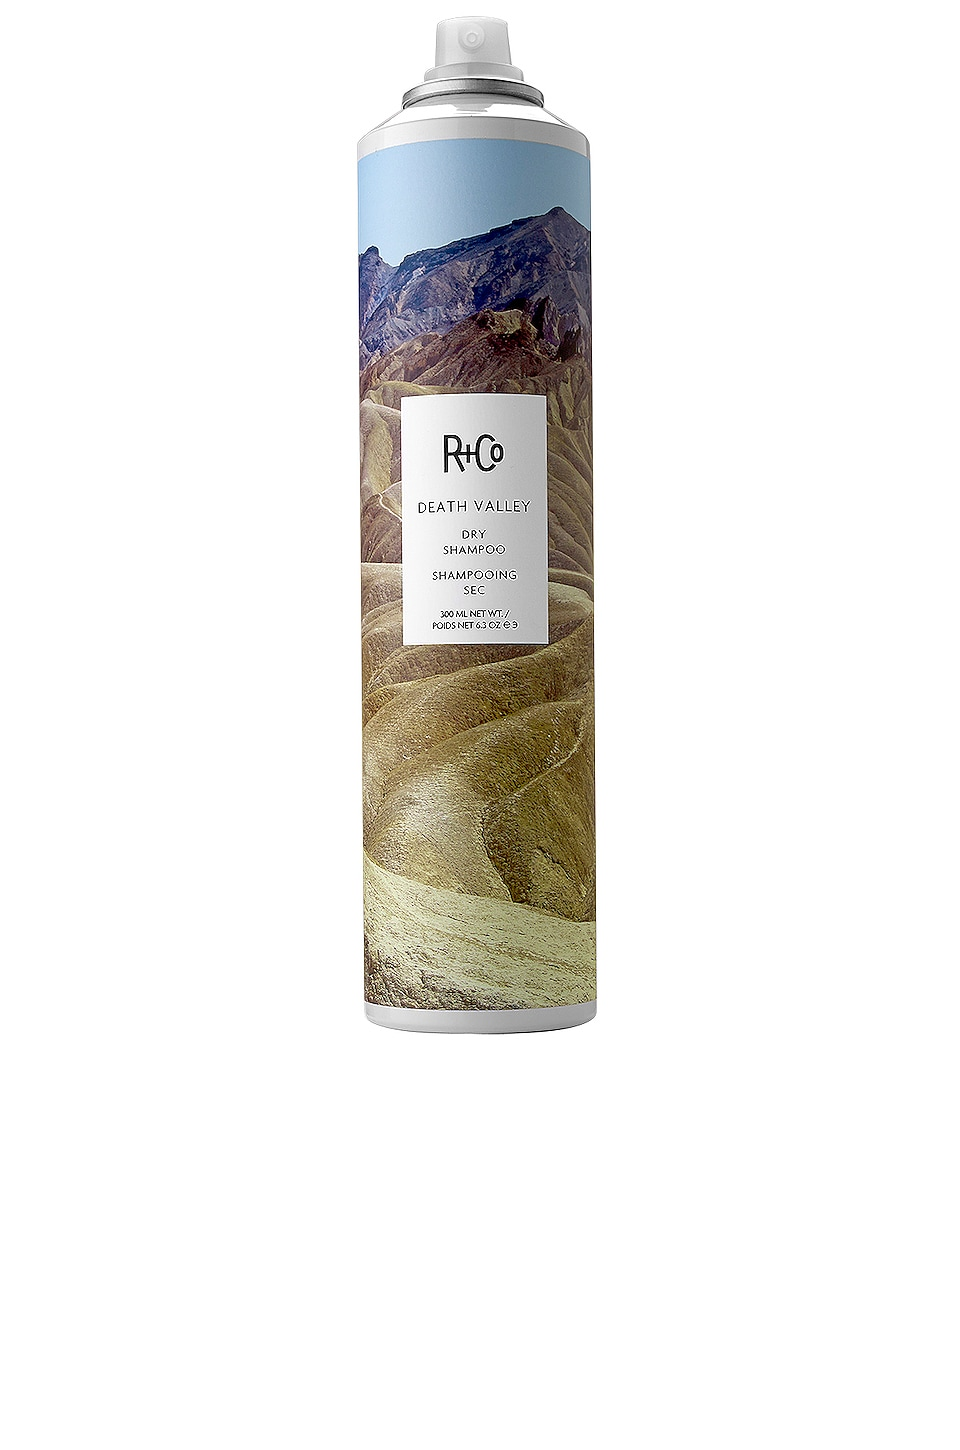 R+Co Death Valley Dry Shampoo in All